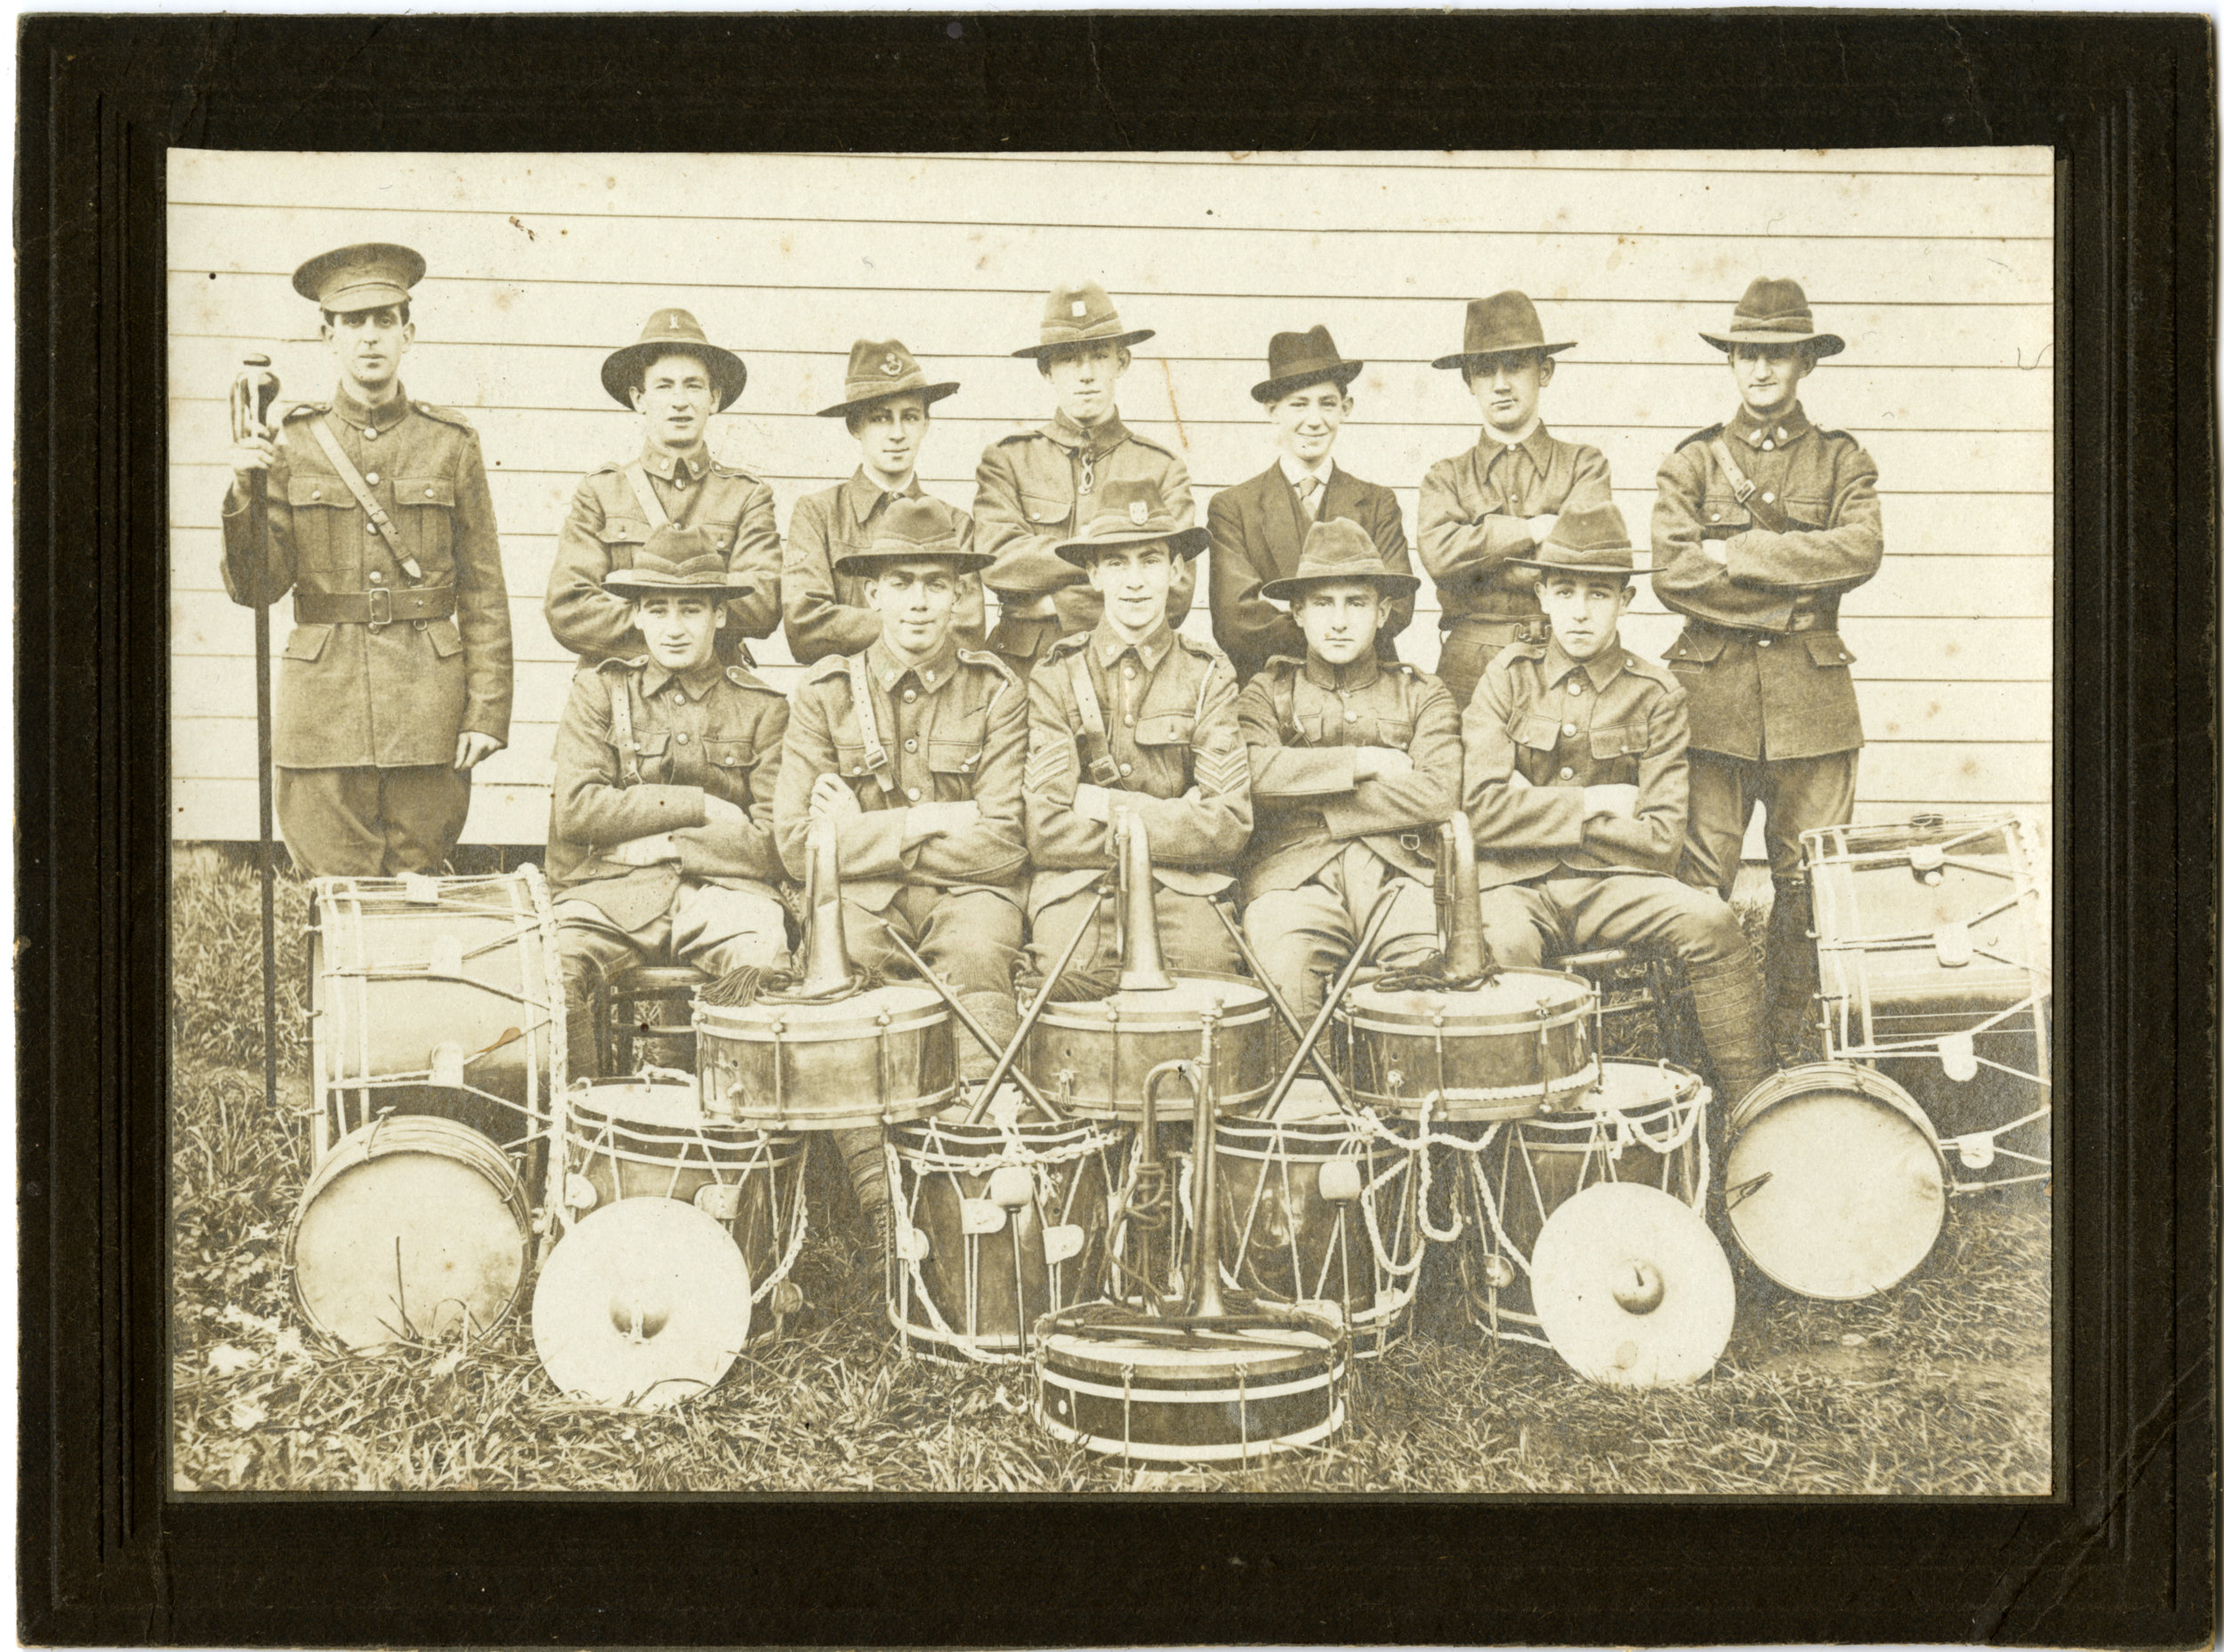 Unidentified military band. Norman is secondon left back row, next to man with marching stick.